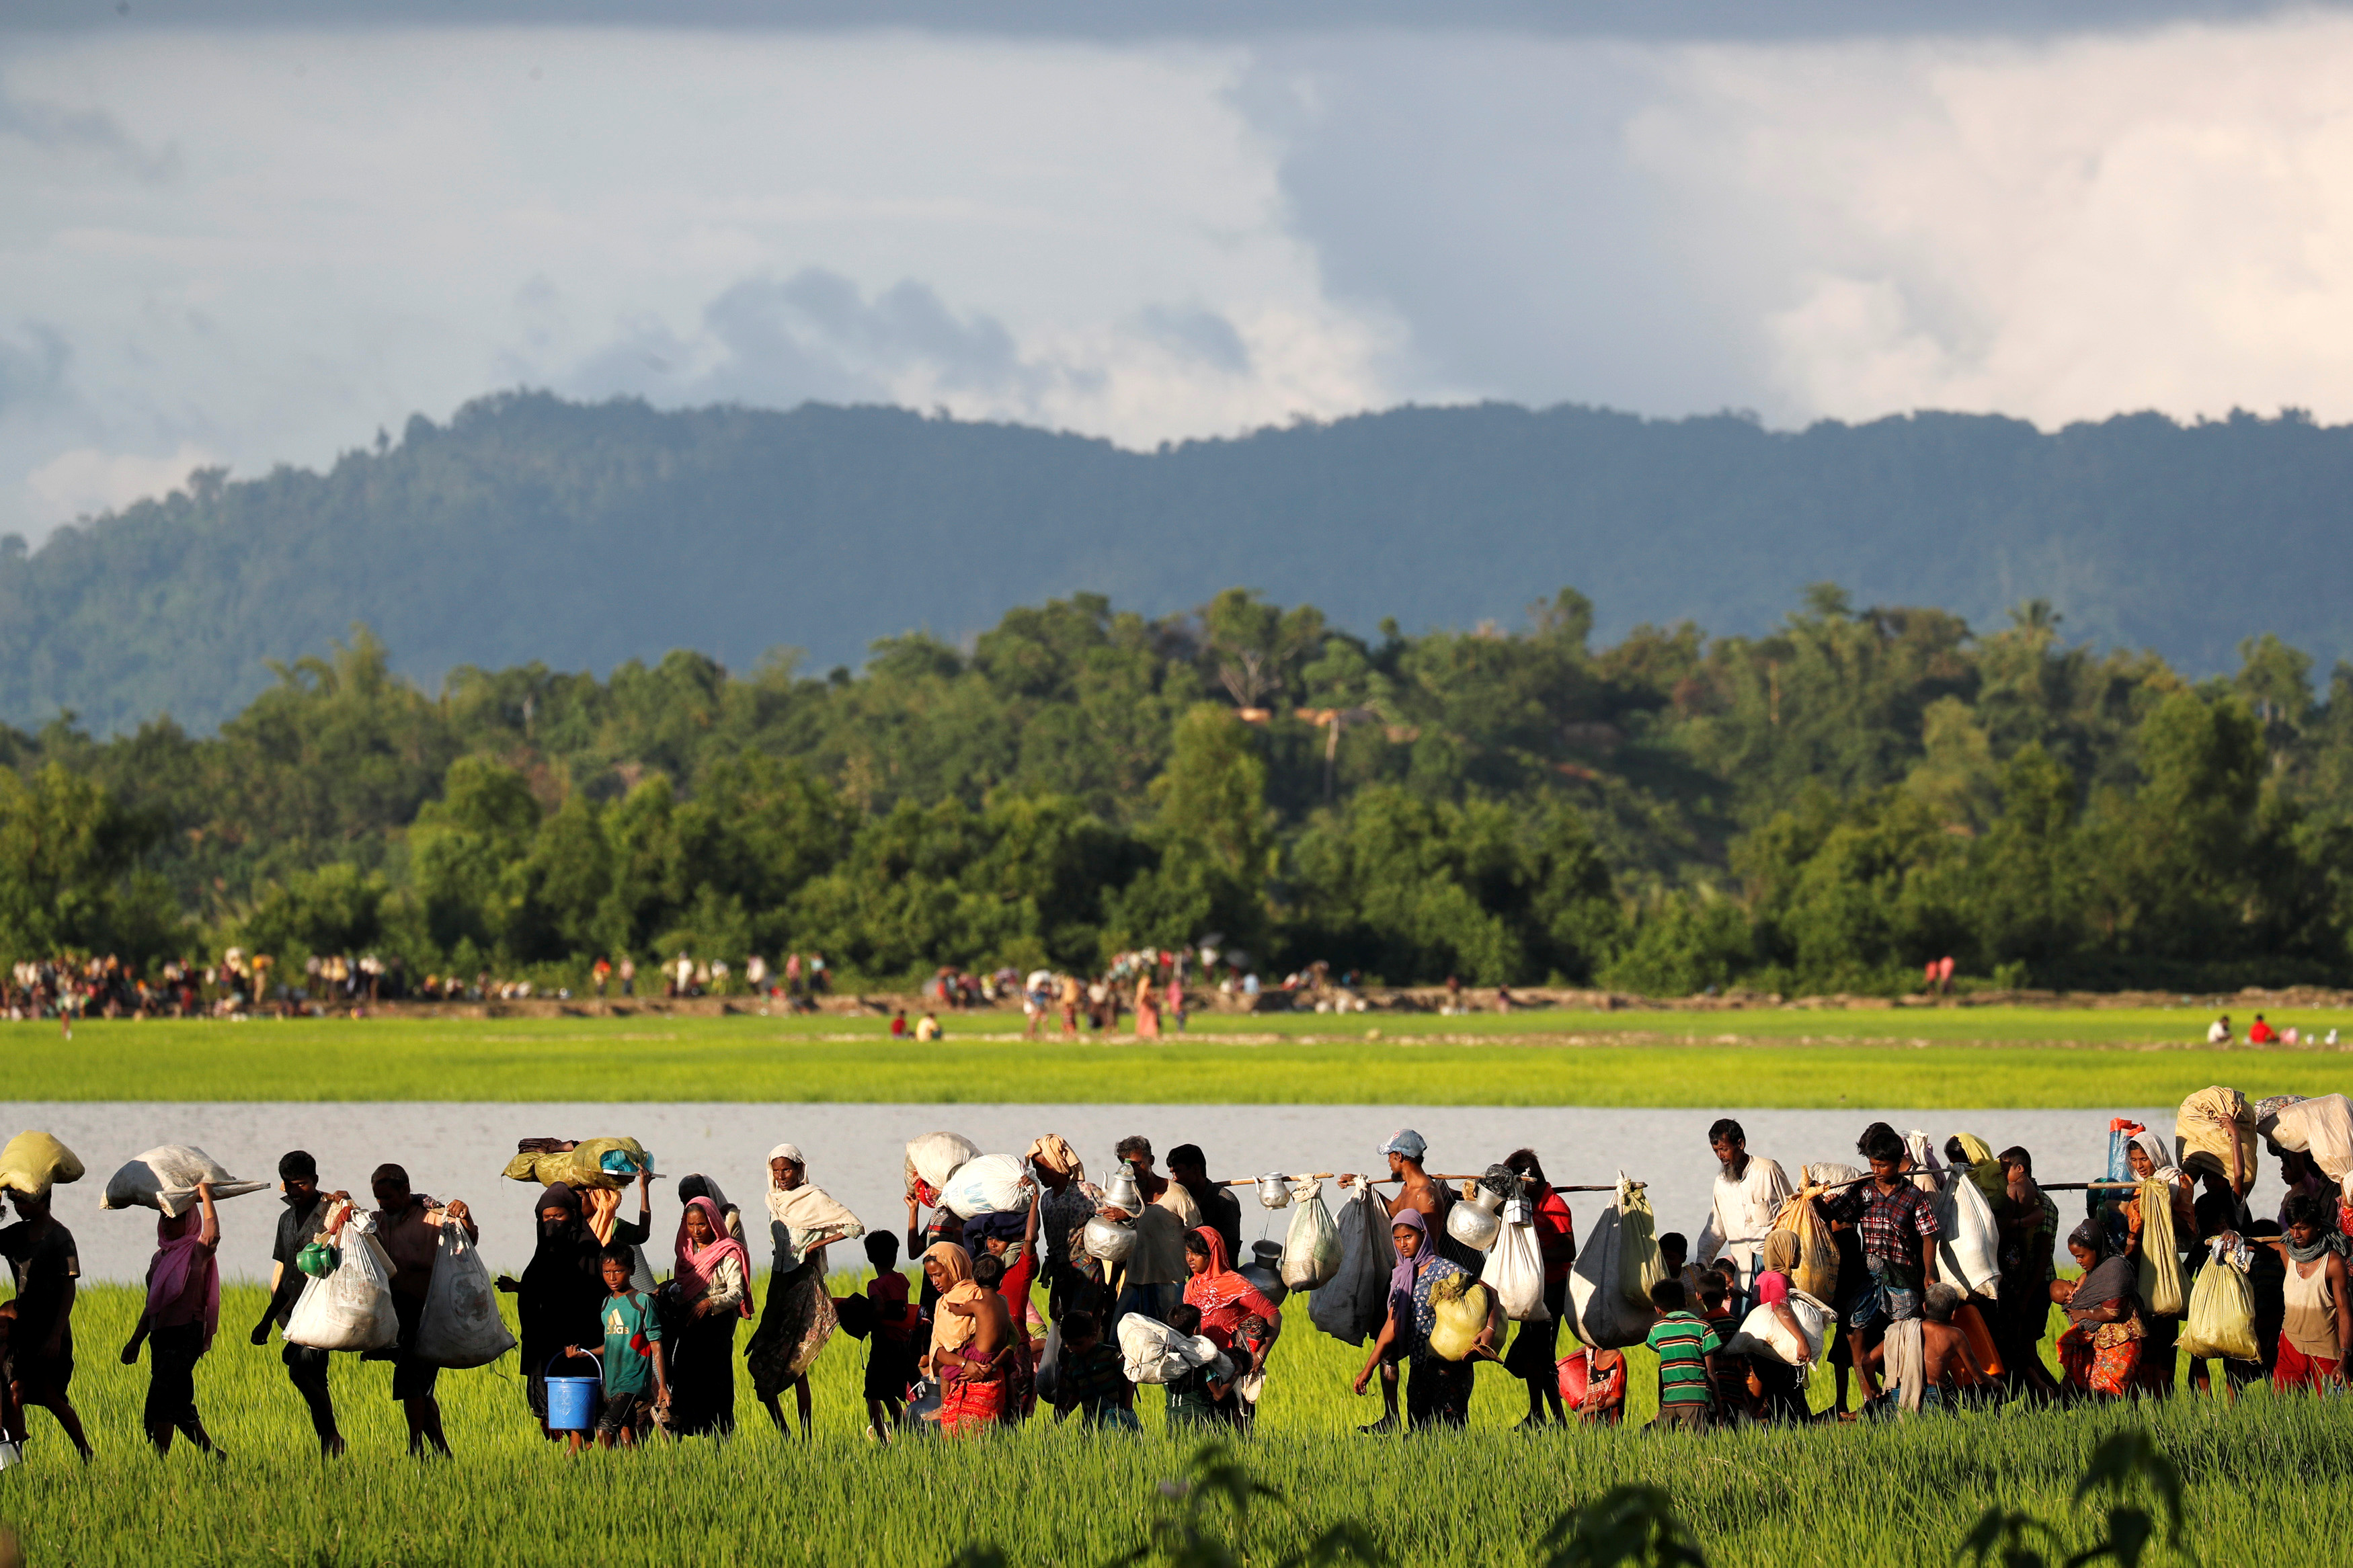 Rohingya refugees, who arrived from Myanmar last night, walk in a rice field after crossing the border in Palang Khali near Cox's Bazaar, Bangladesh